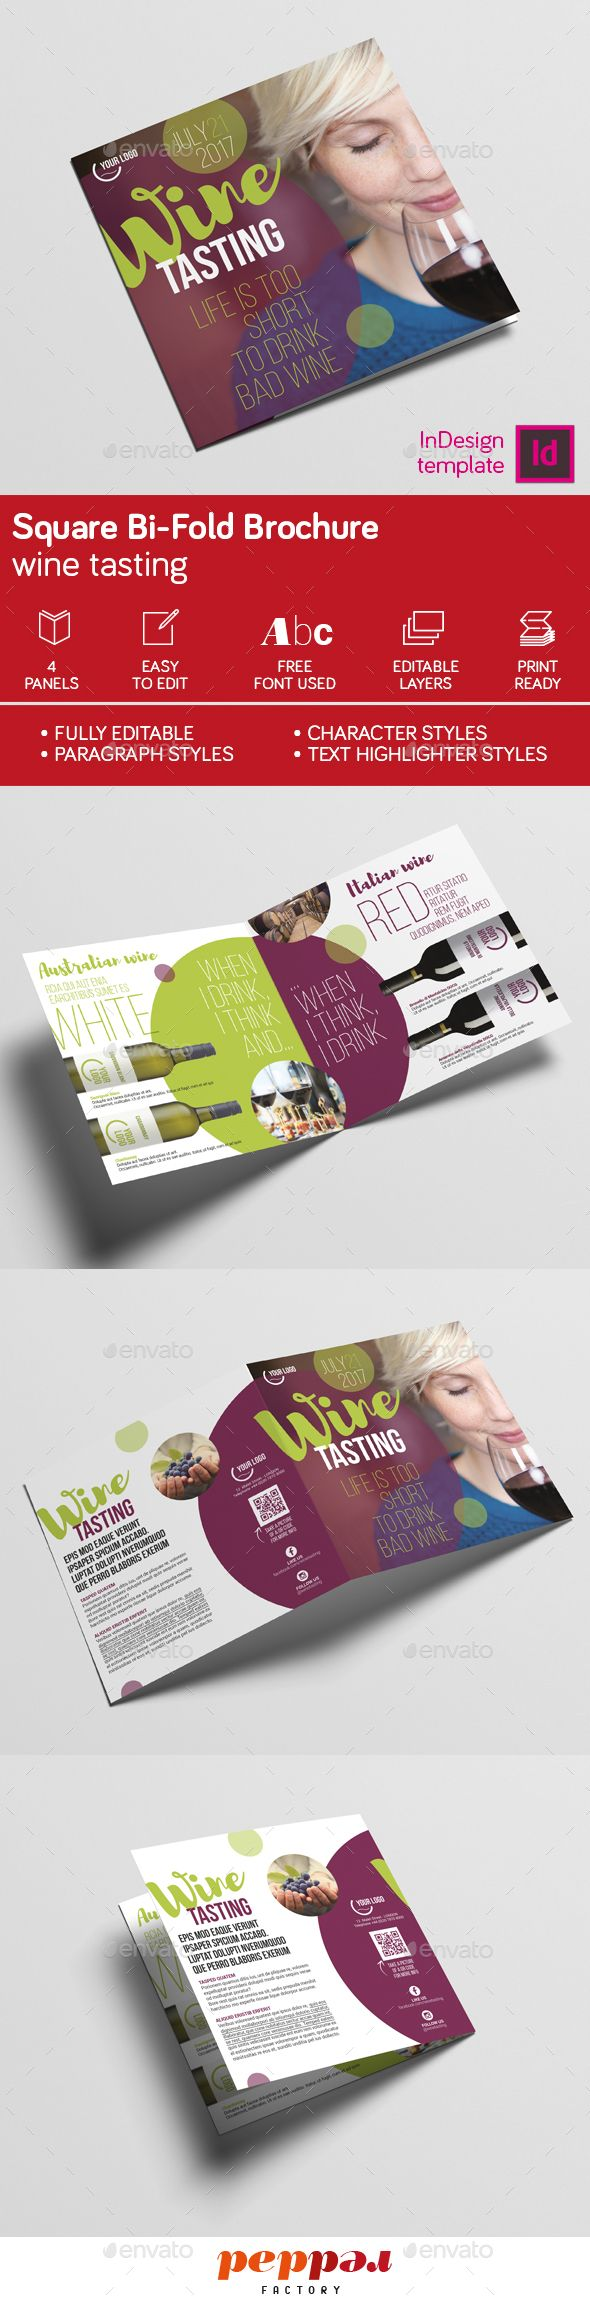 wine square bi fold brochure